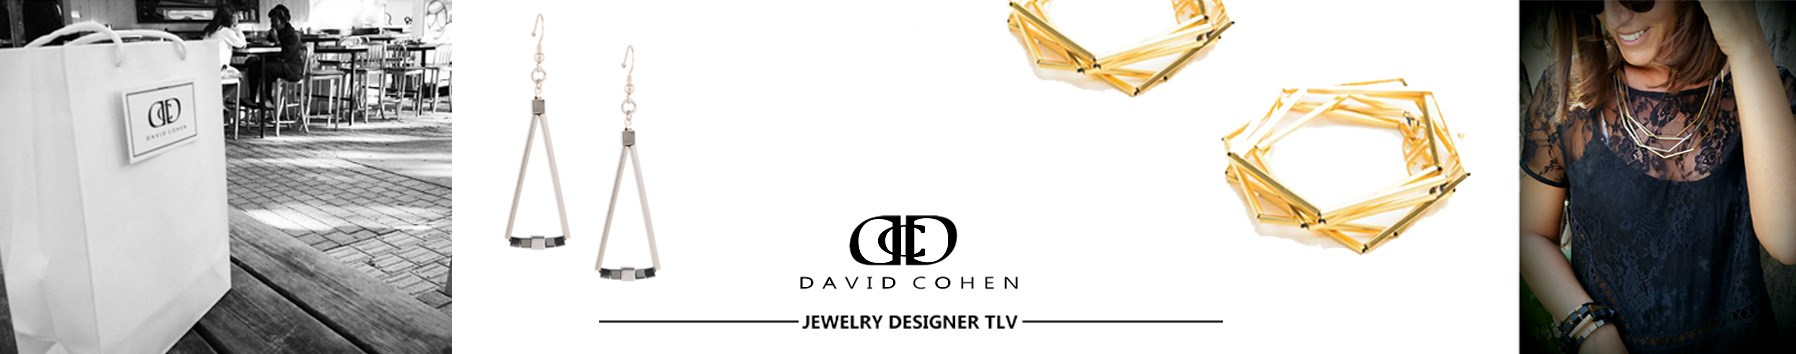 David cohen jewlery